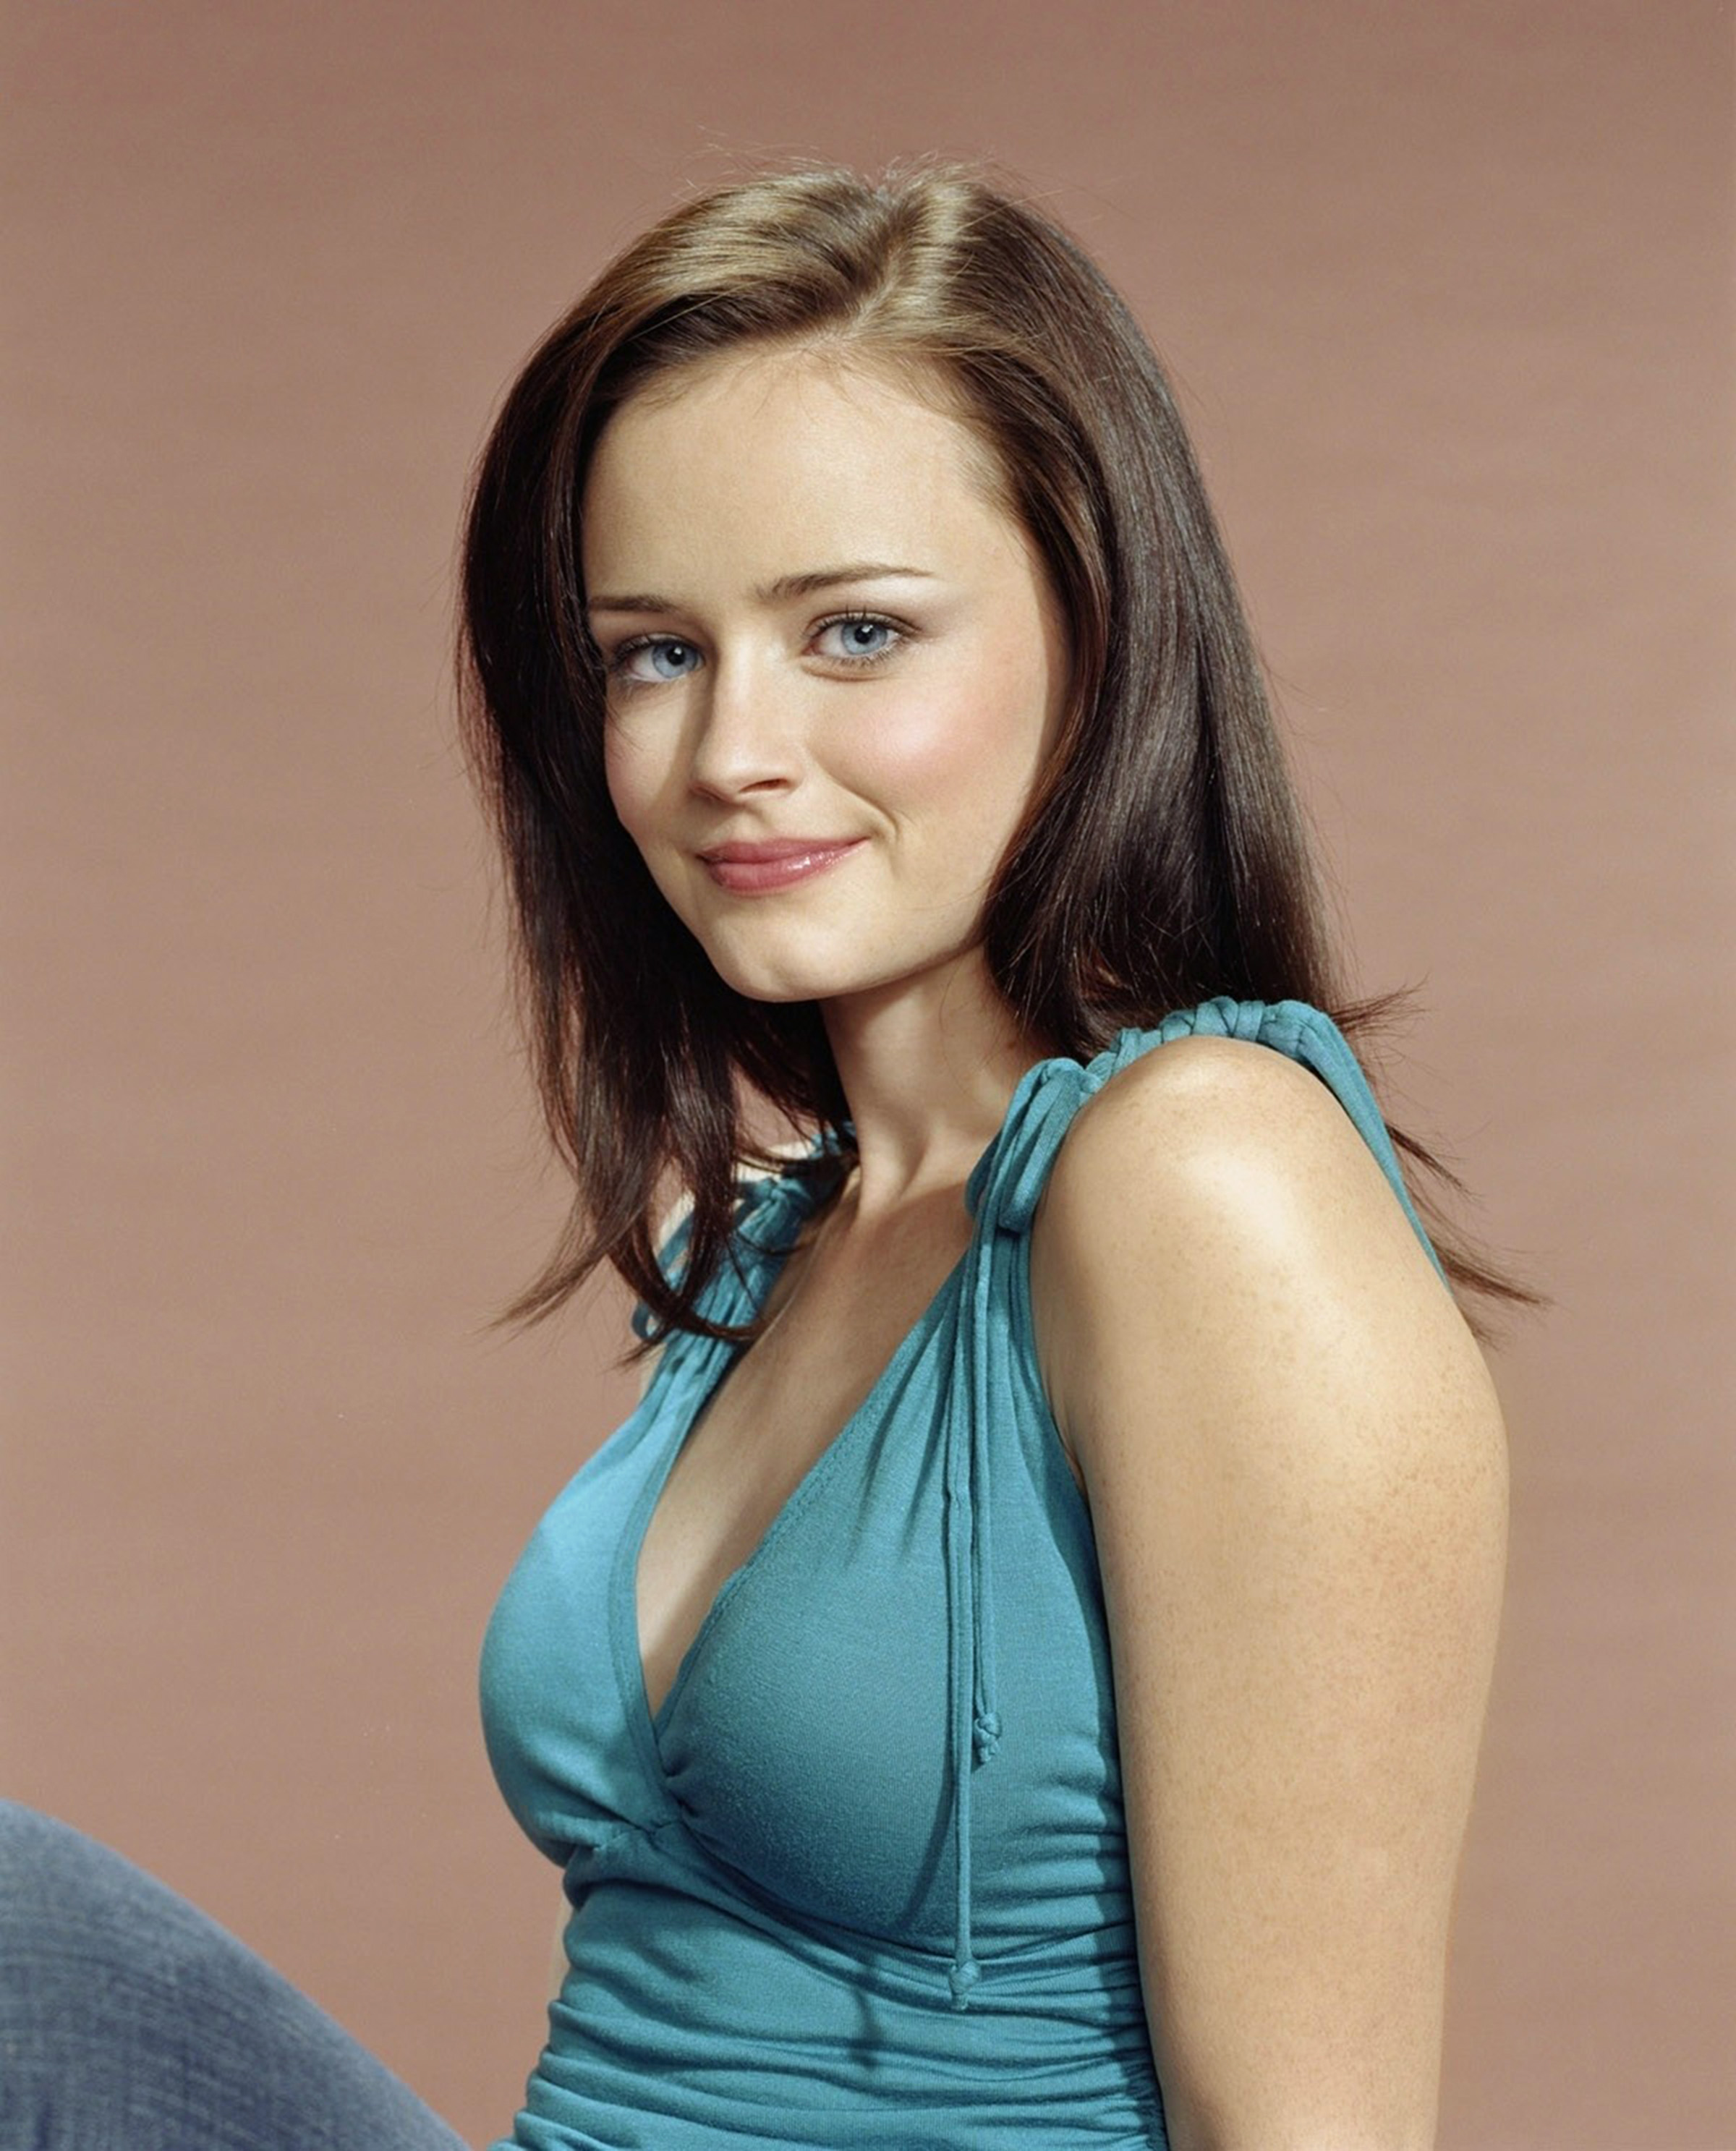 Thought differently, Lauren graham alexis bledel gilmore girls fakes really. happens